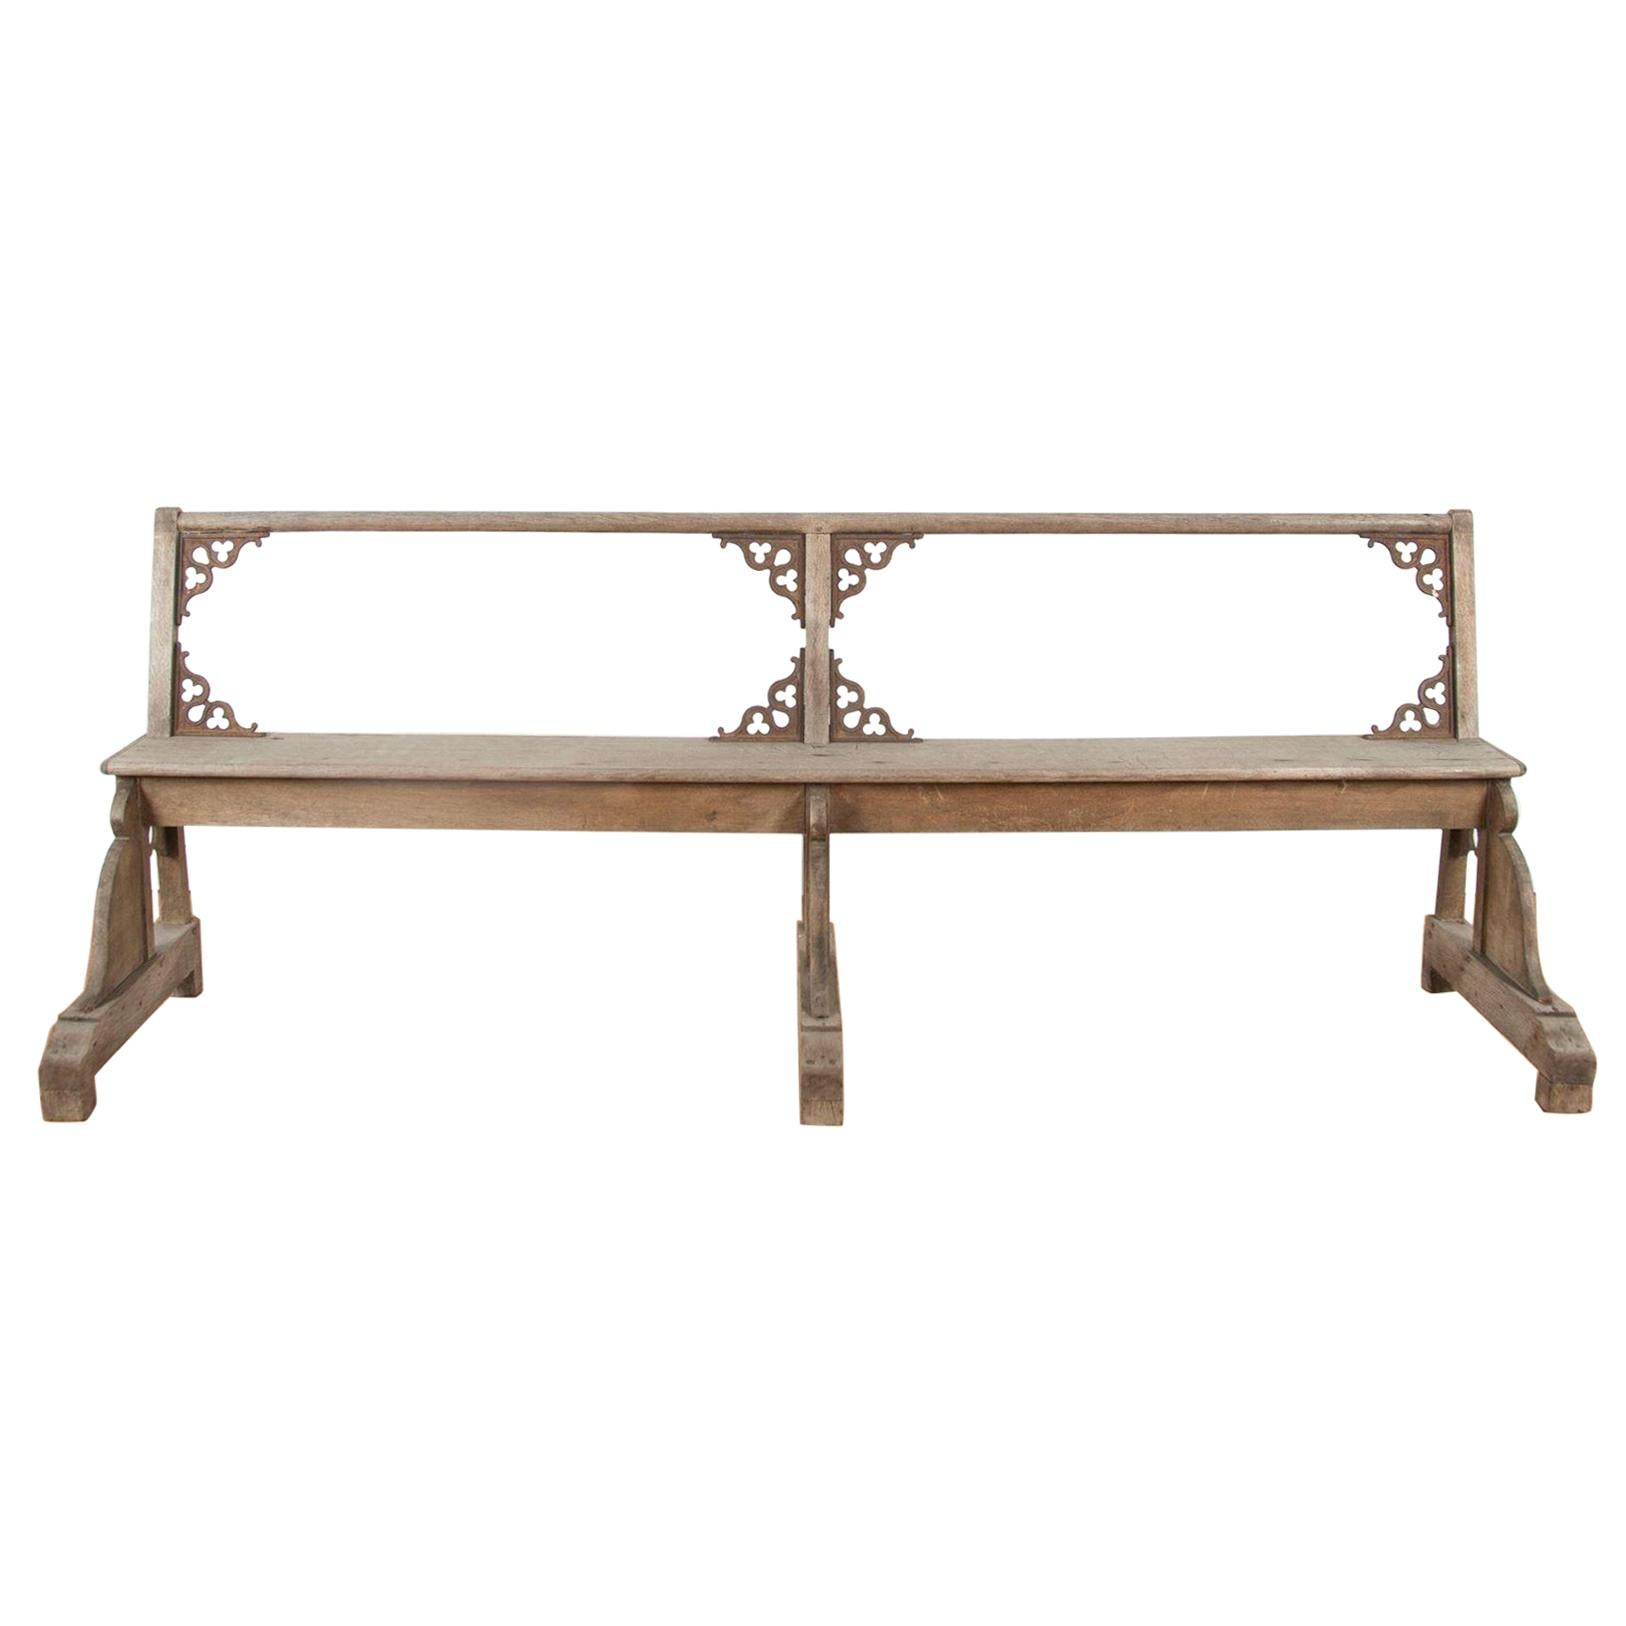 Pair of 19th Century Silvered Oak Benches